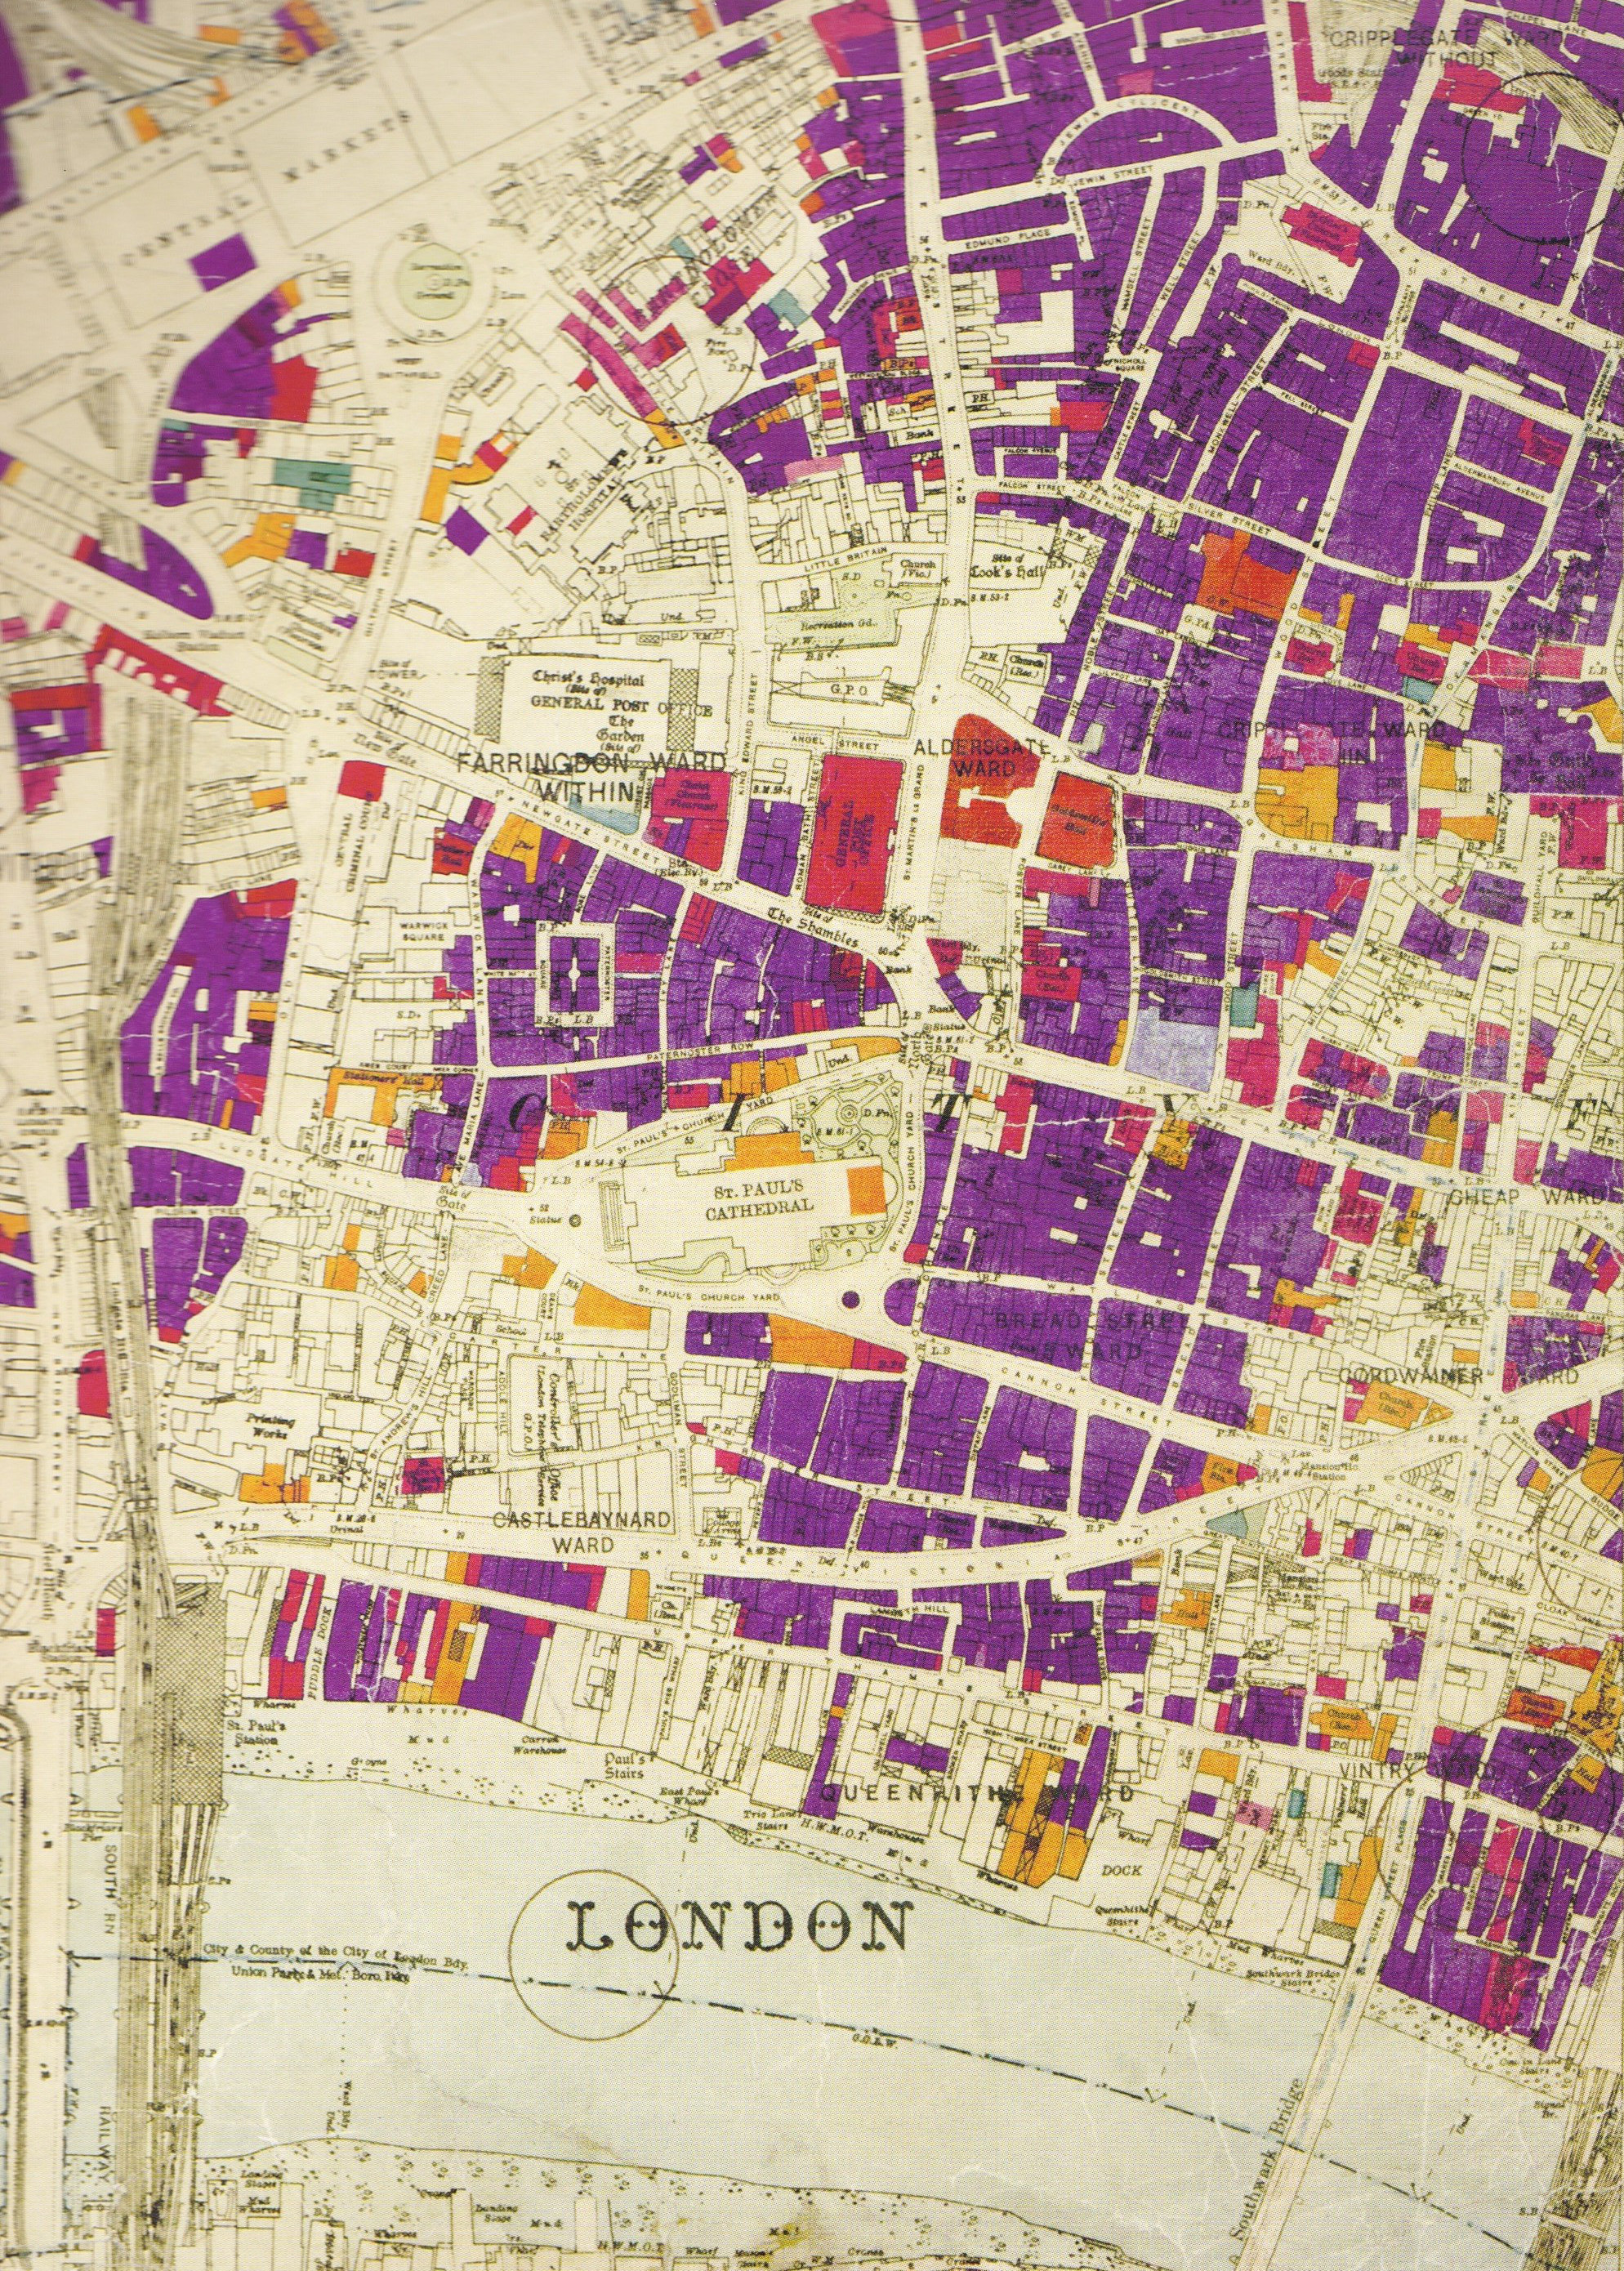 Map Of The City Of London.File City Of London Bomb Damage Map Jpg Wikimedia Commons